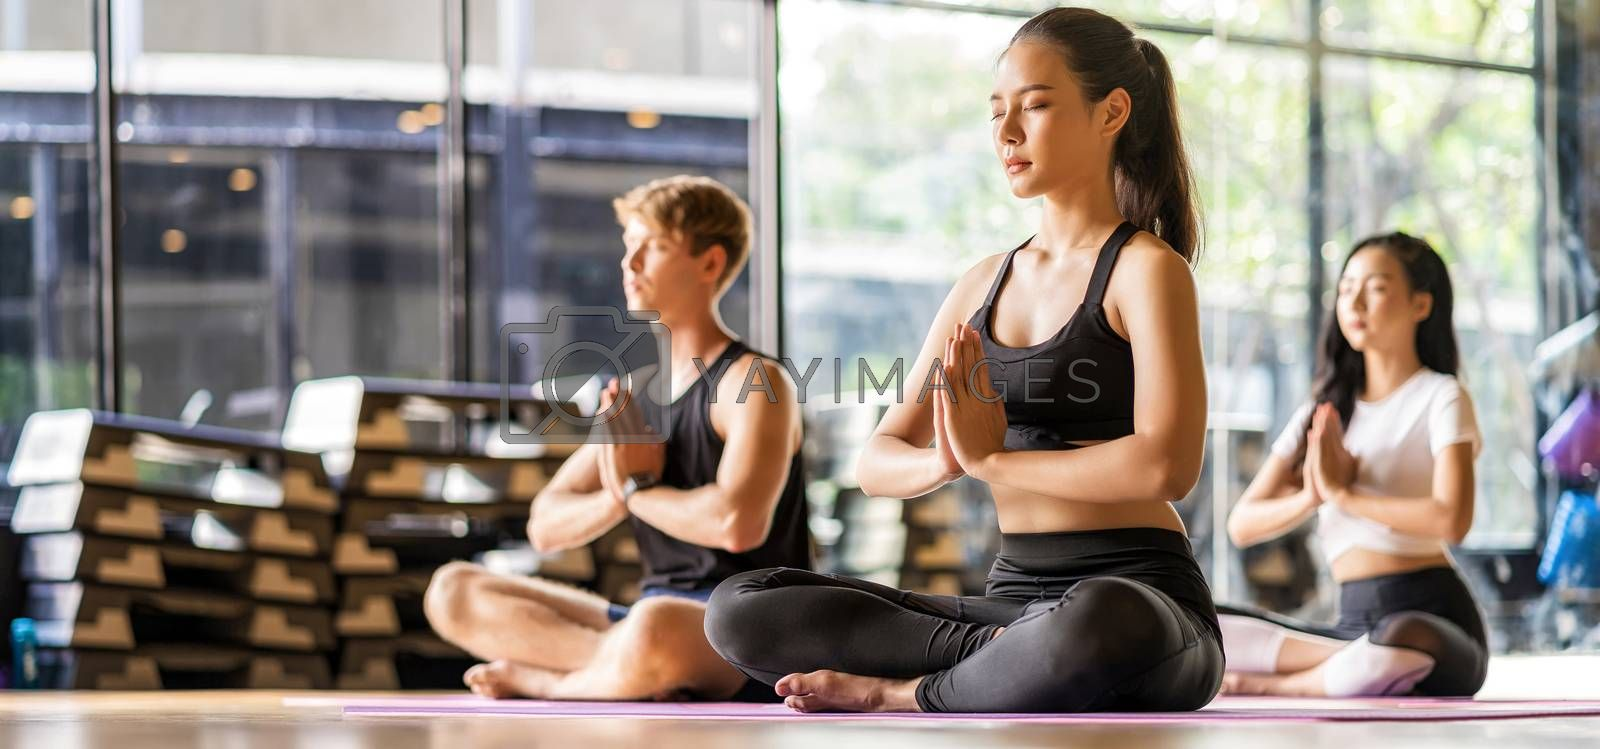 Banner Group of diversity practicing yoga class, healthy or Meditation Exercise,stretching in upward facing dog exercise, wearing sportswear bra and pants, sports and healthcare concept,